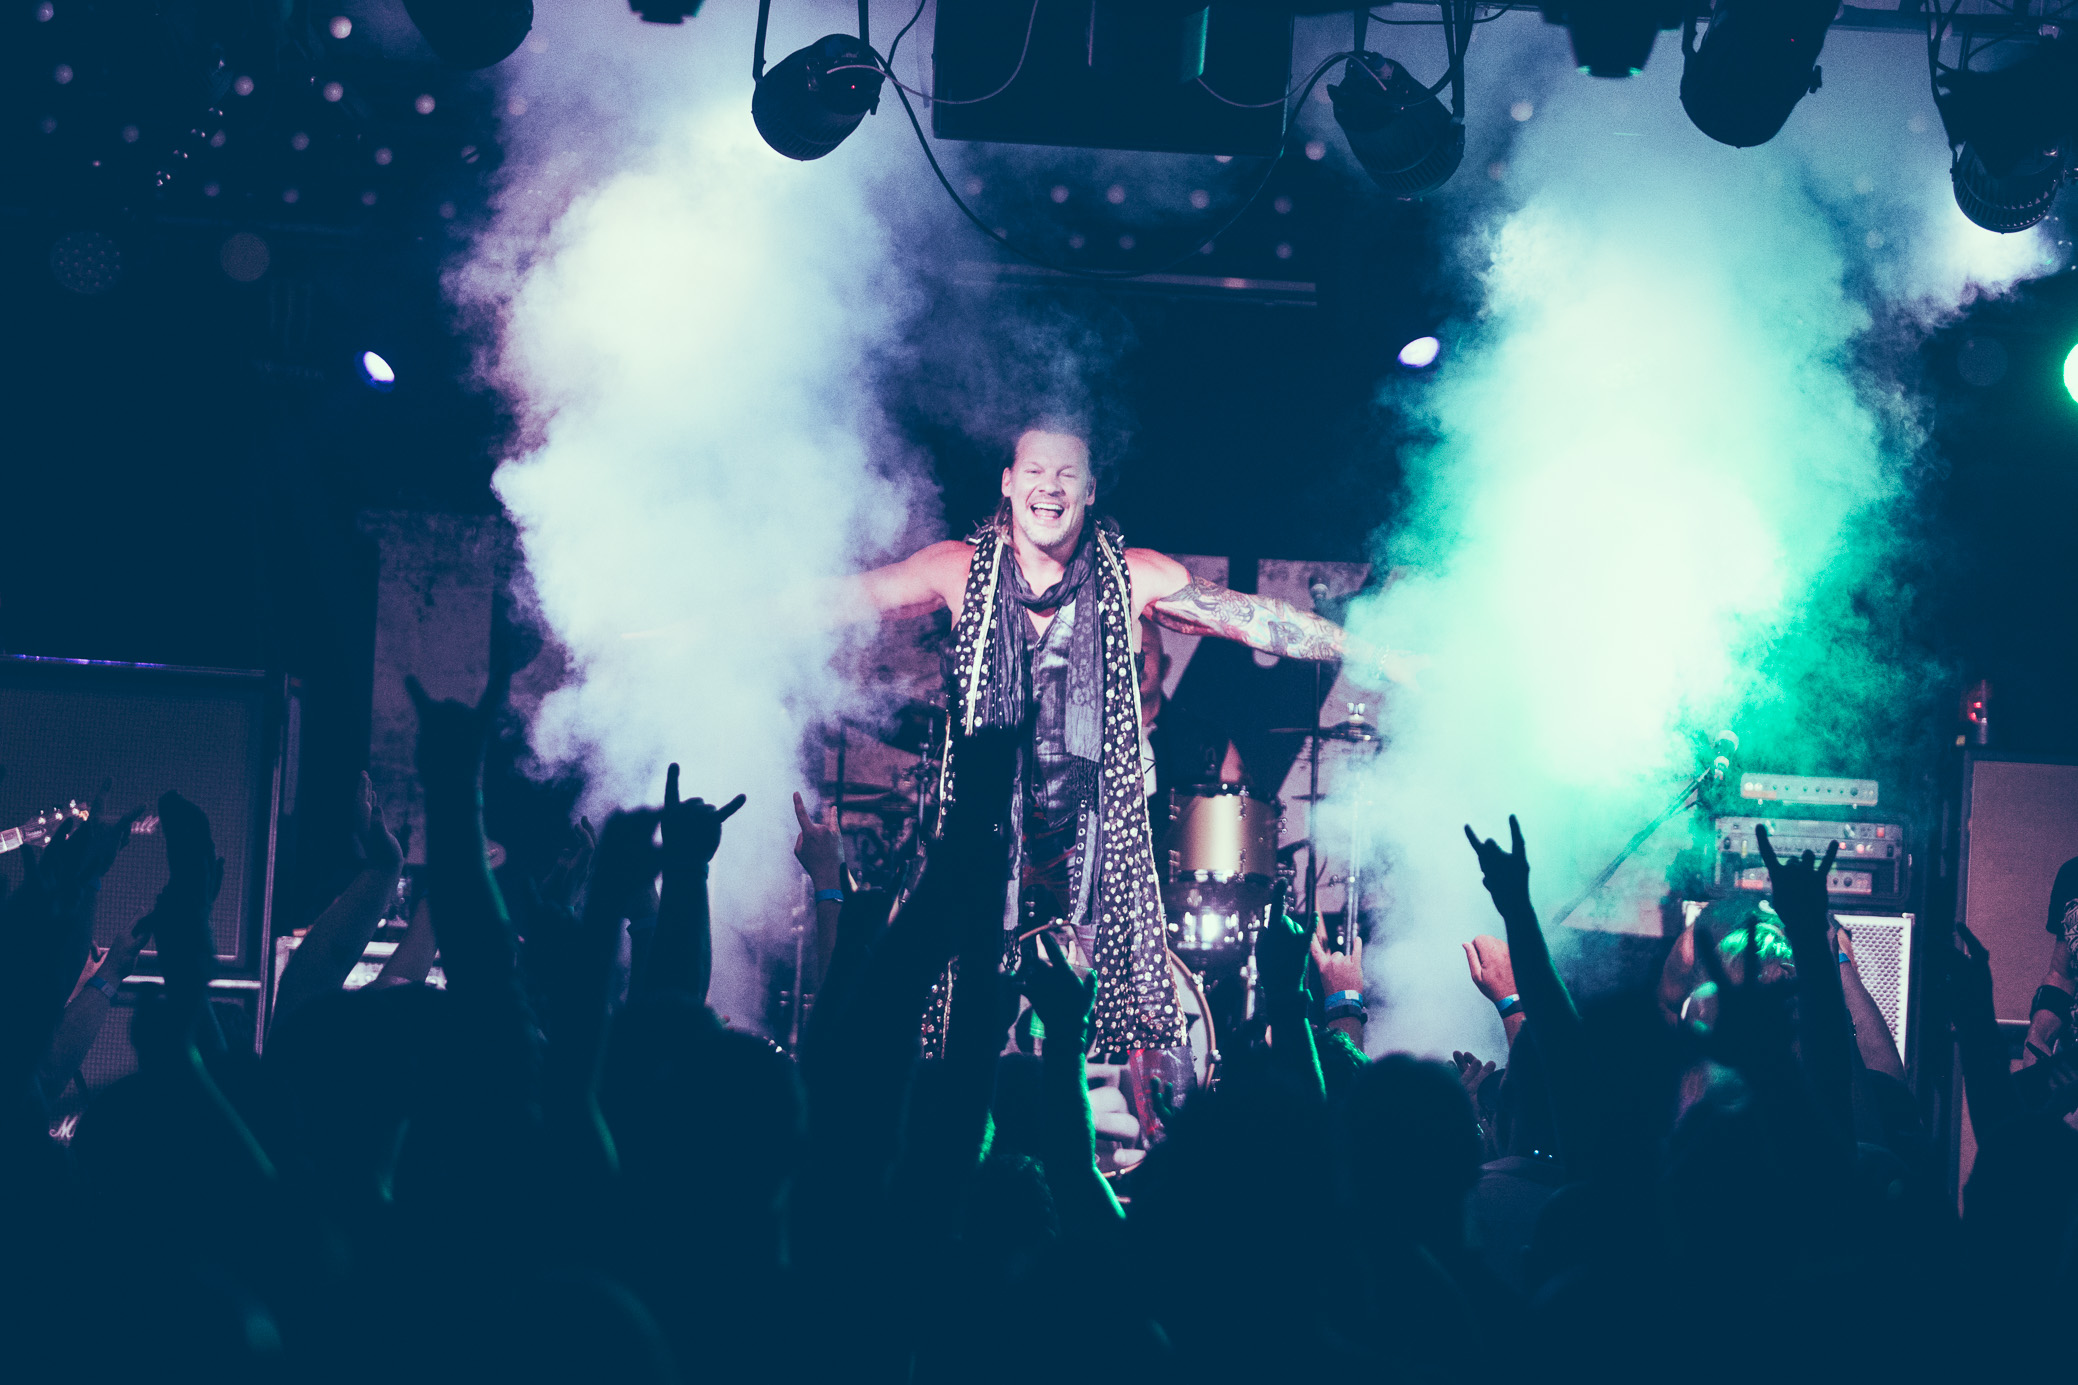 Chris Jericho of Fozzy performs in concert at Saturn Birmingham in Birmingham, Alabama on August 25th, 2018. (Photo by David A. Smith/DSmithScenes)